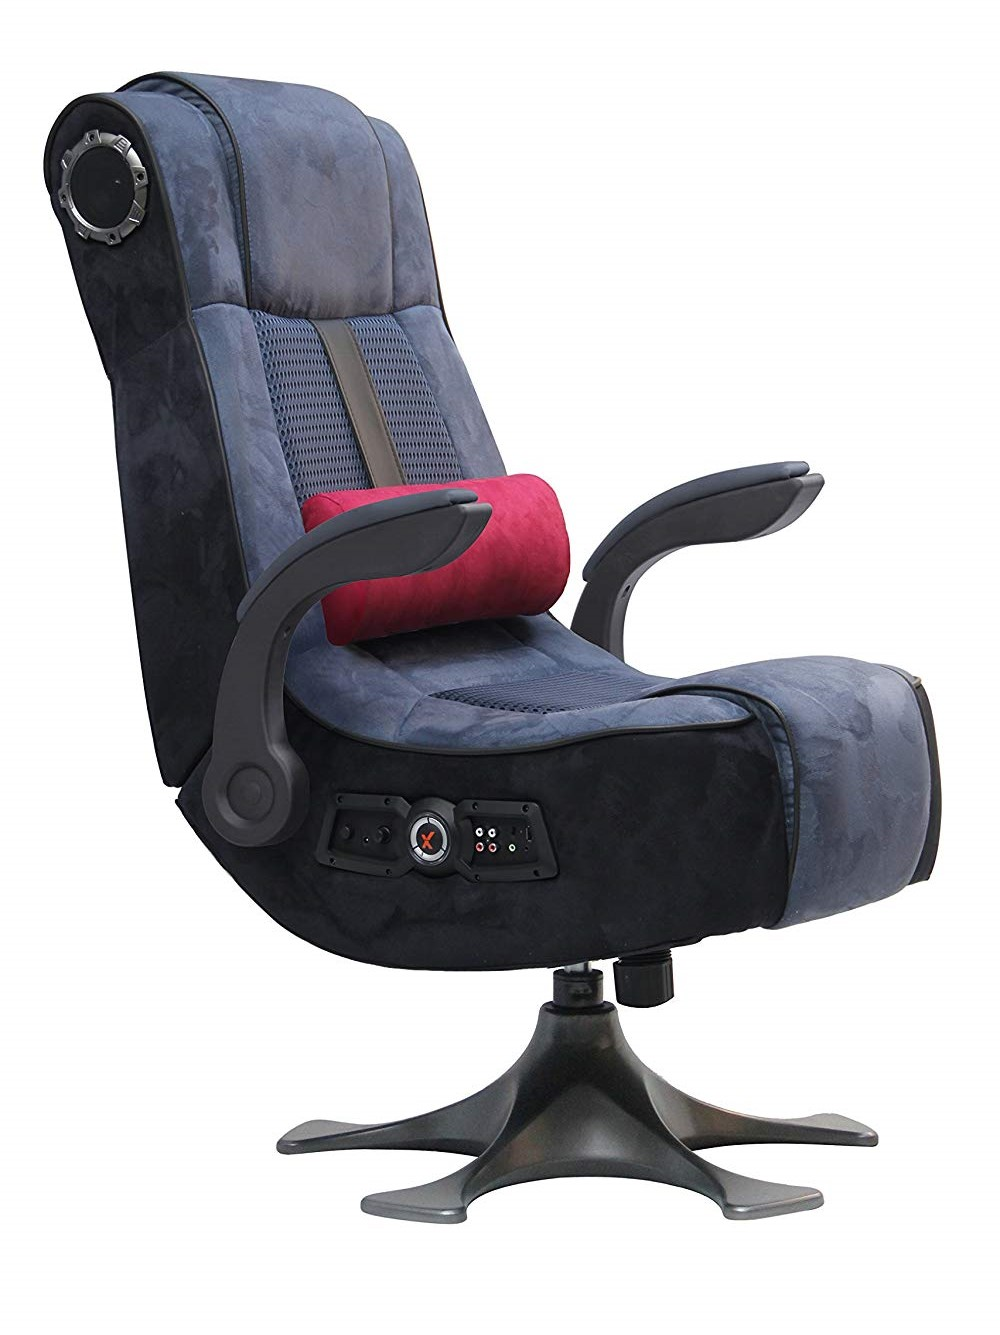 Adult Console Gaming Chair The Best Of 2019 Chairs